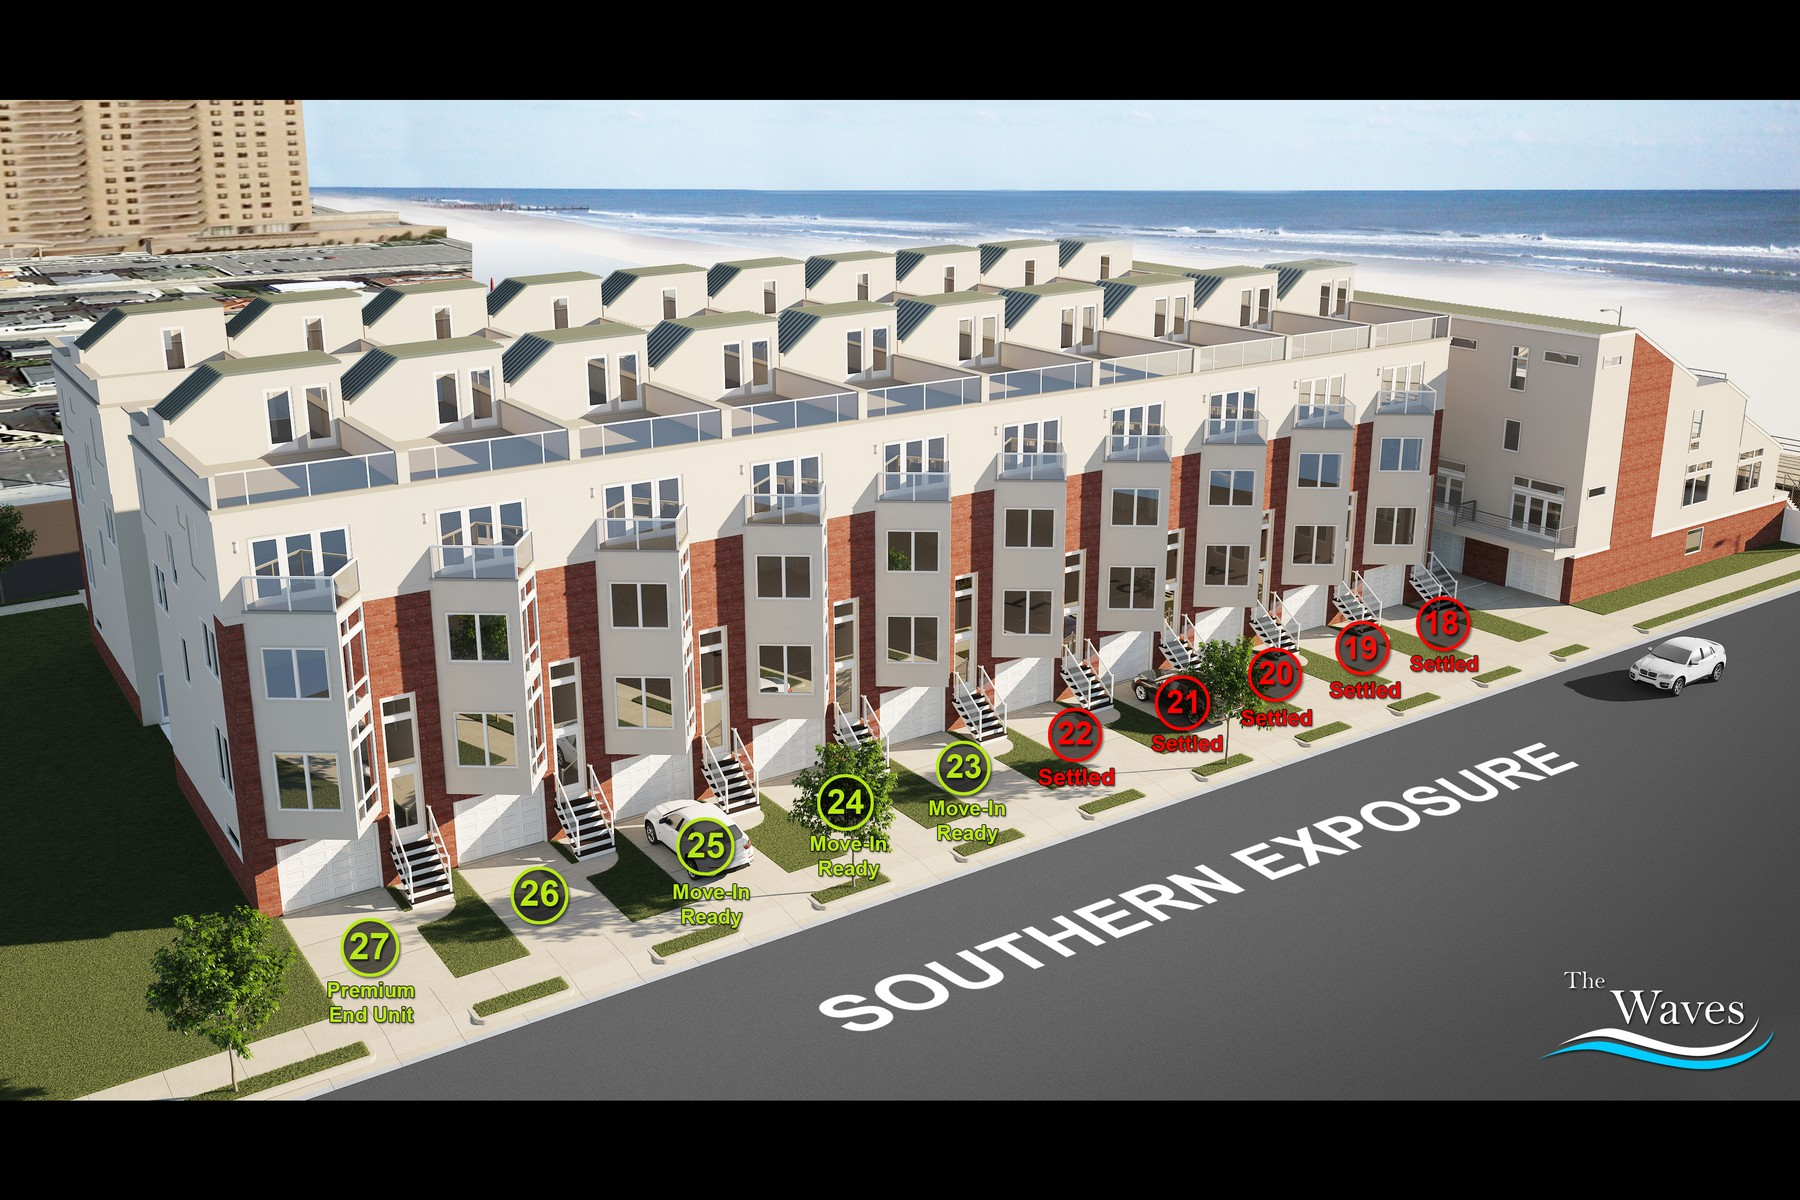 Townhouse for Sale at The Waves 5206 Boardwalk UNIT 26 Ventnor, New Jersey 08406 United States